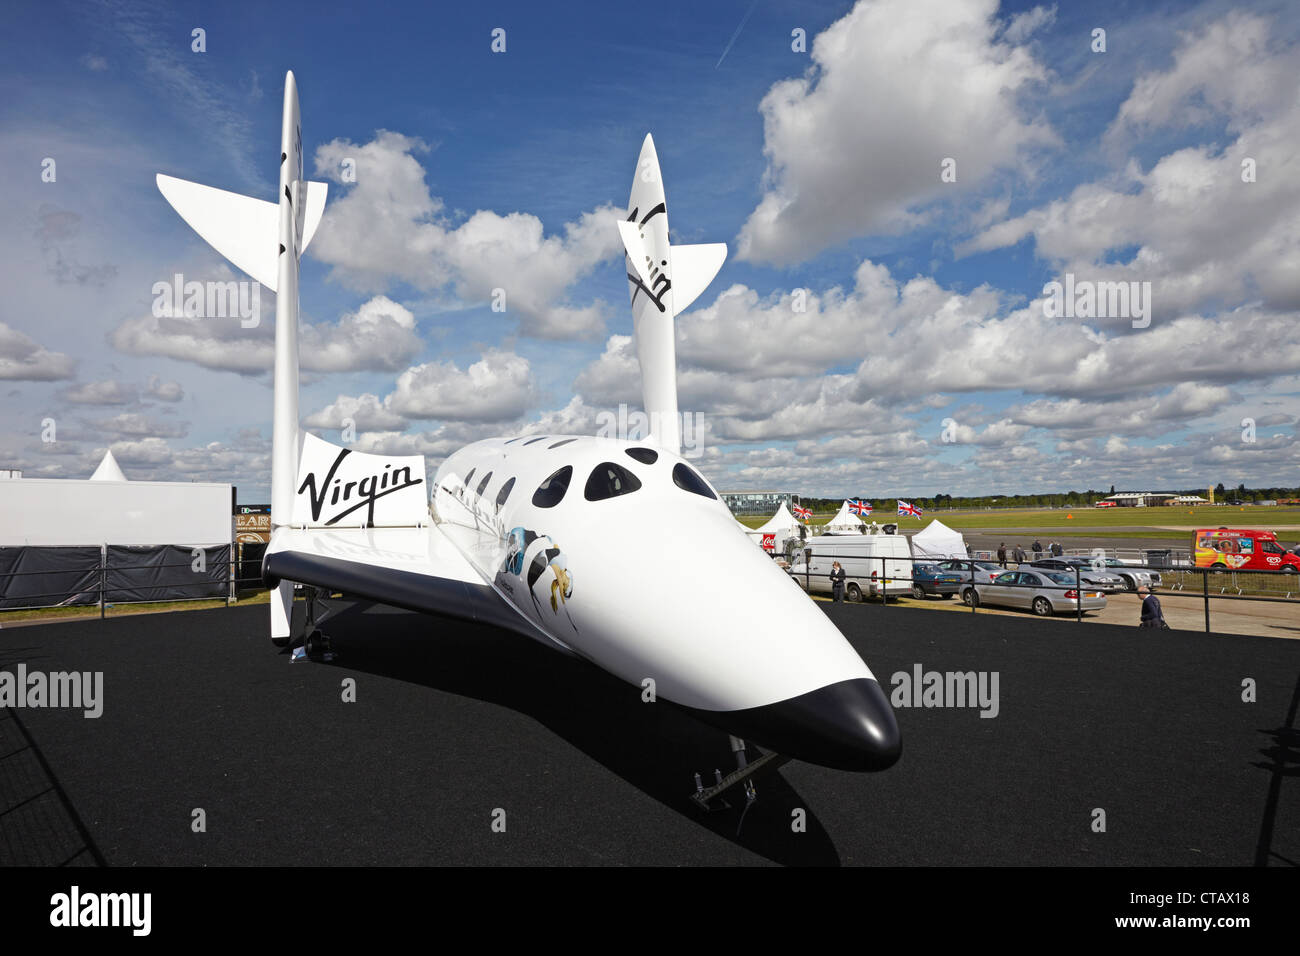 Farnborough International Airshow Virgin Galactic SpaceShipTwo Imagen De Stock